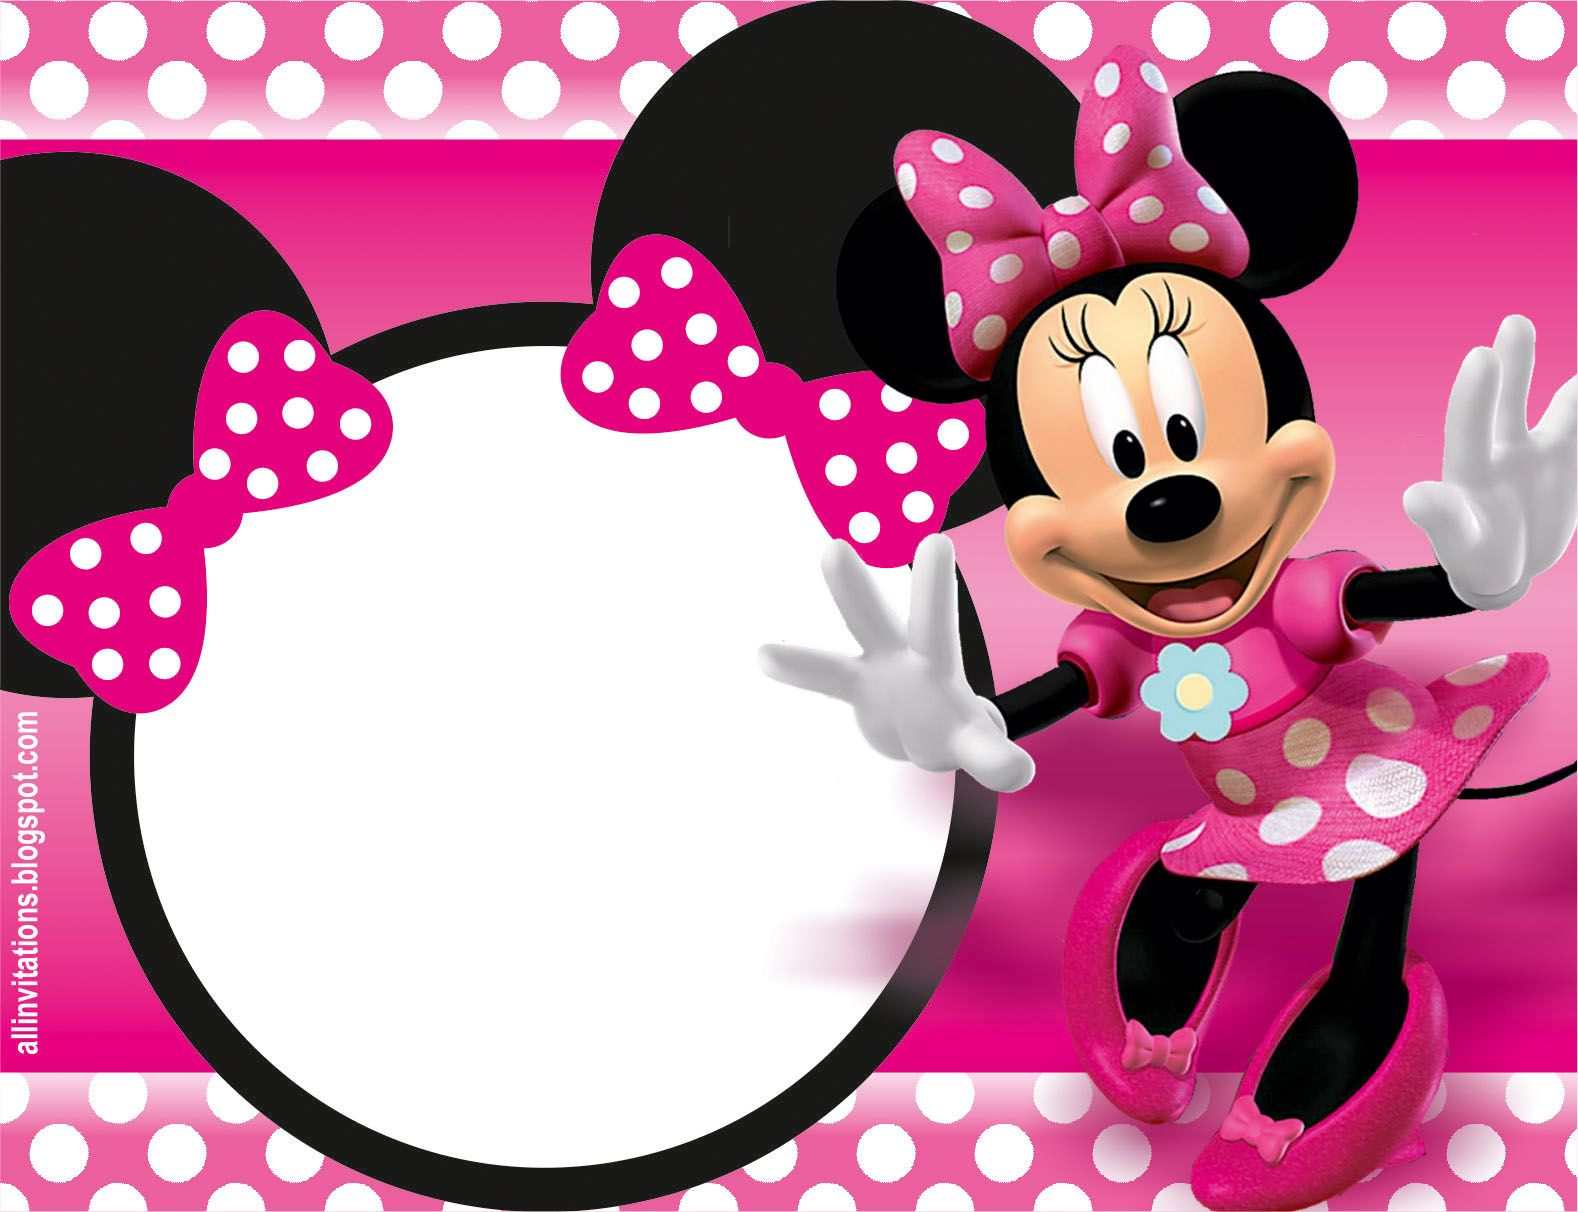 Plantilla para invitación de mimi | MiCkEy & MiNniE PaRty ...